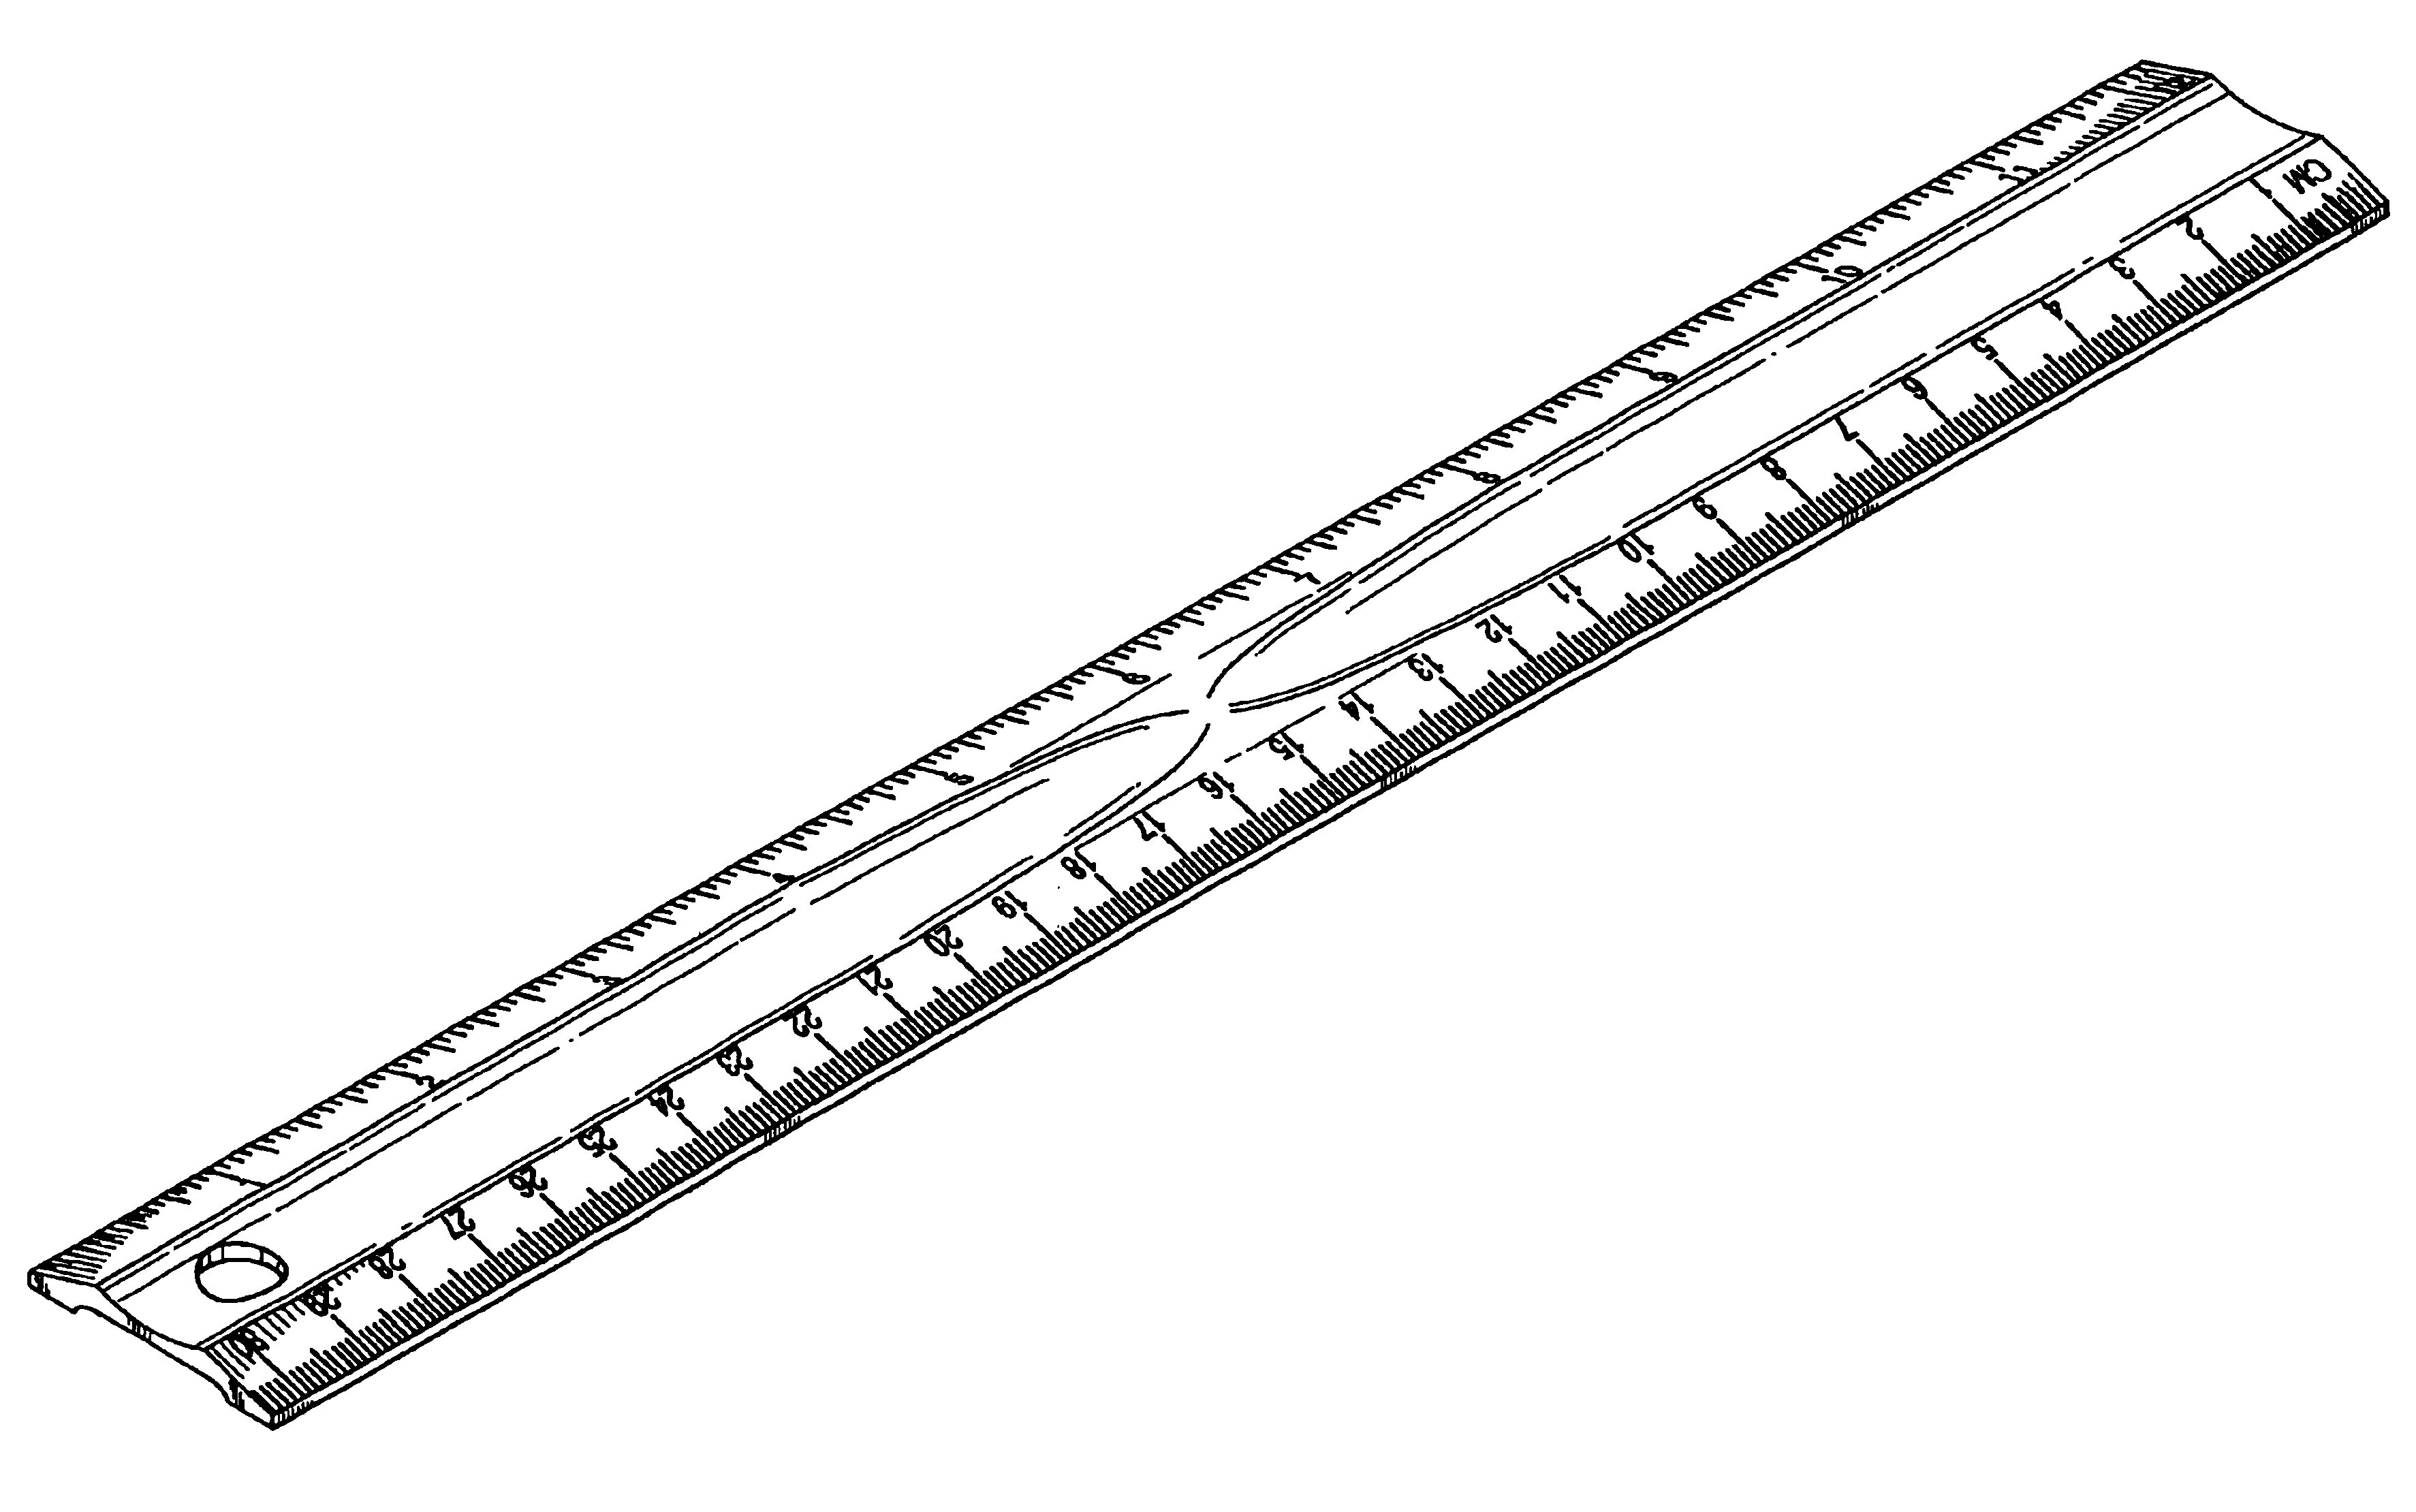 Free cliparts download clip. Clipart ruler long ruler